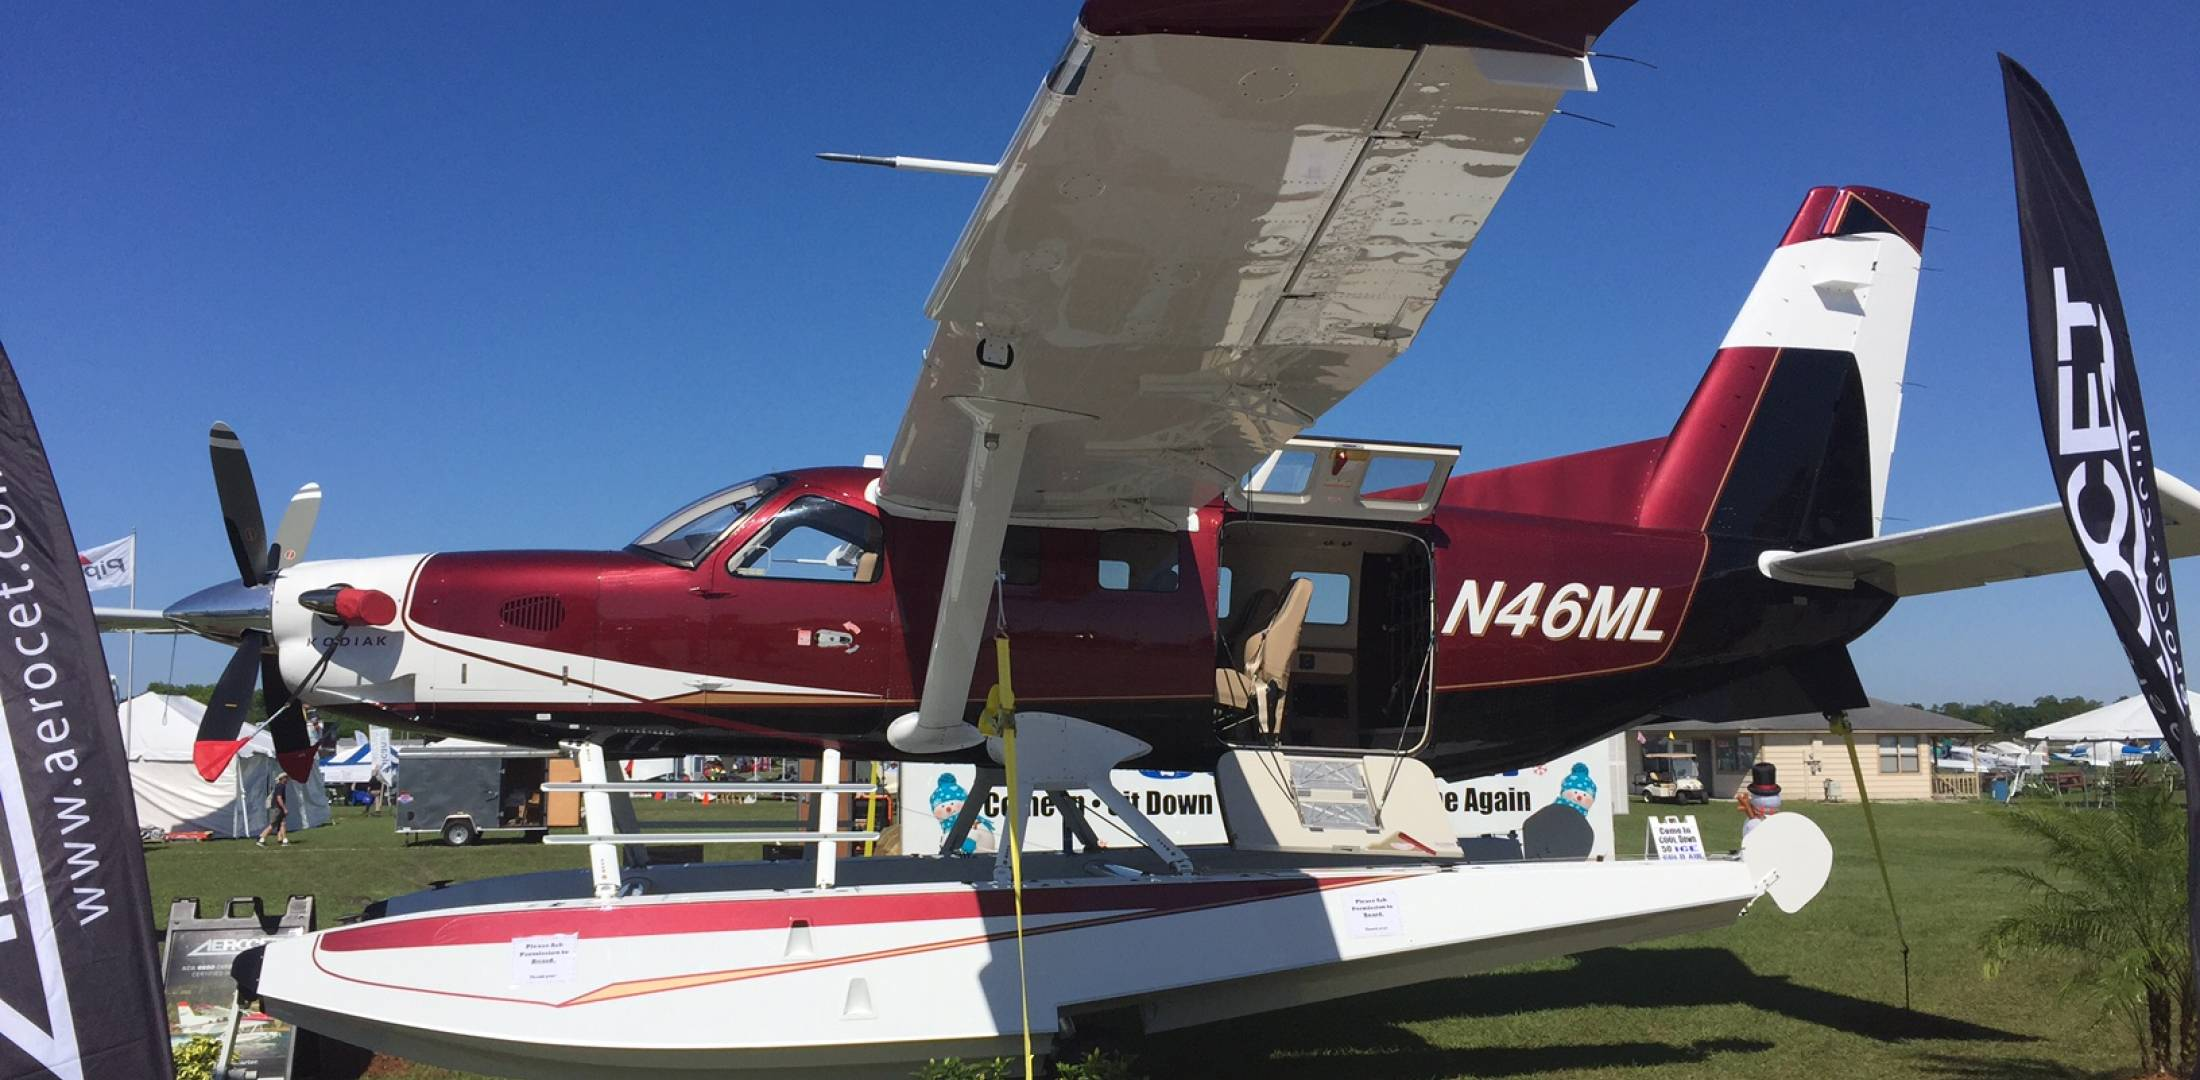 Quest Kodiak Okd In New Zealand As Company Looks To Future Cessna 172 Engineering Schematics The Avocet Floats Were Certified Last Year For Opening More Possibilities Turboprop Single Photo Chad Trautvetter Ain